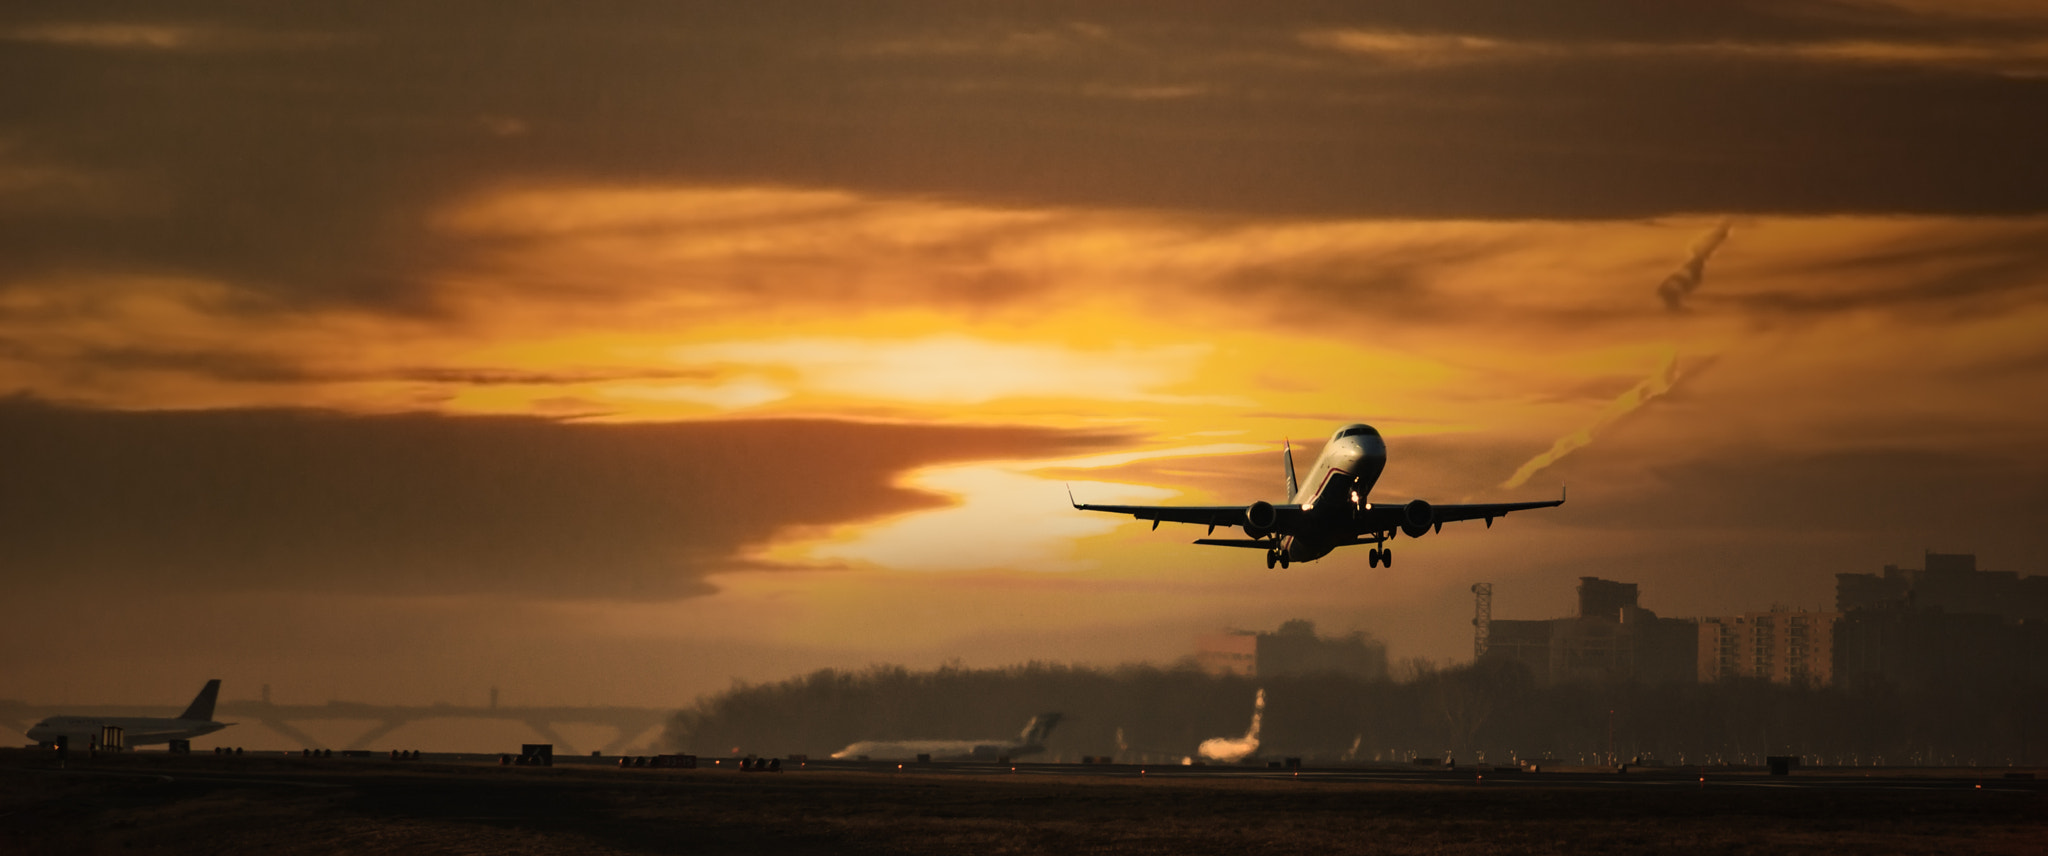 Photograph Takeoff by Joe Rebello on 500px